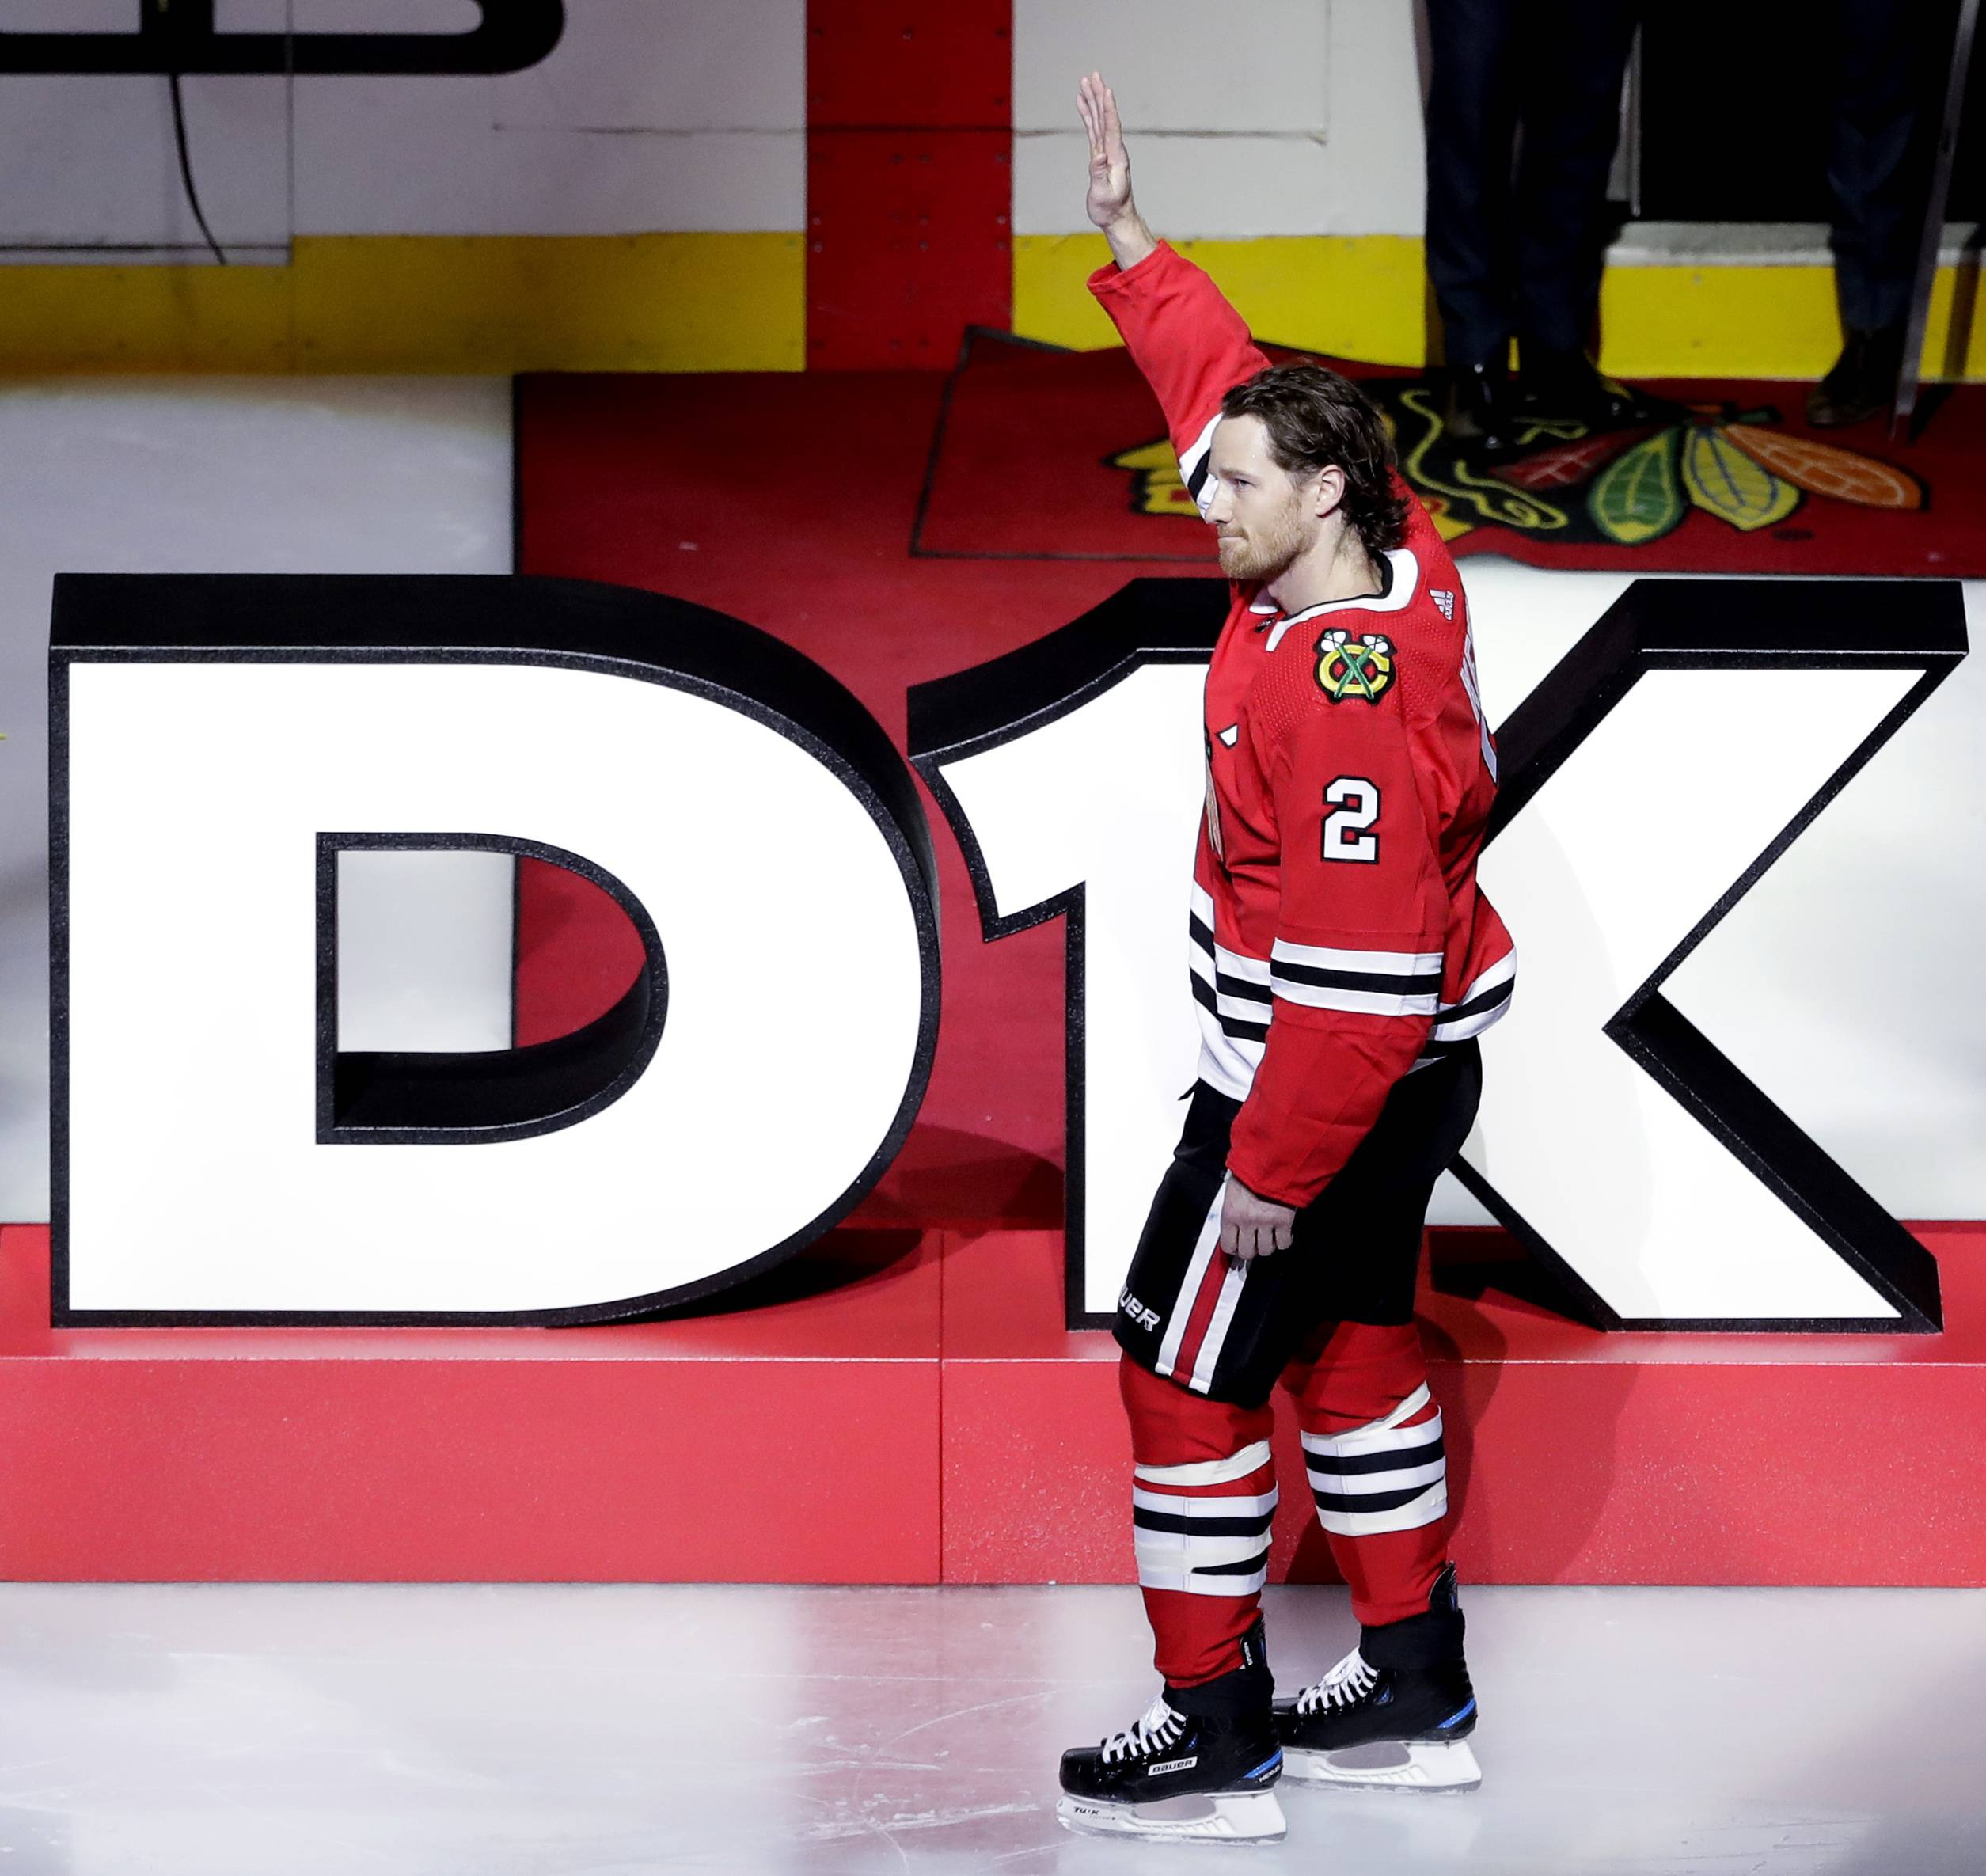 Chicago Blackhawks' Duncan Keith waves to fans during a pregame ceremony honoring for his 1000th game as a Blackhawks player before an NHL hockey game against the St. Louis Blues, Saturday, Oct. 13, 2018, in Chicago.